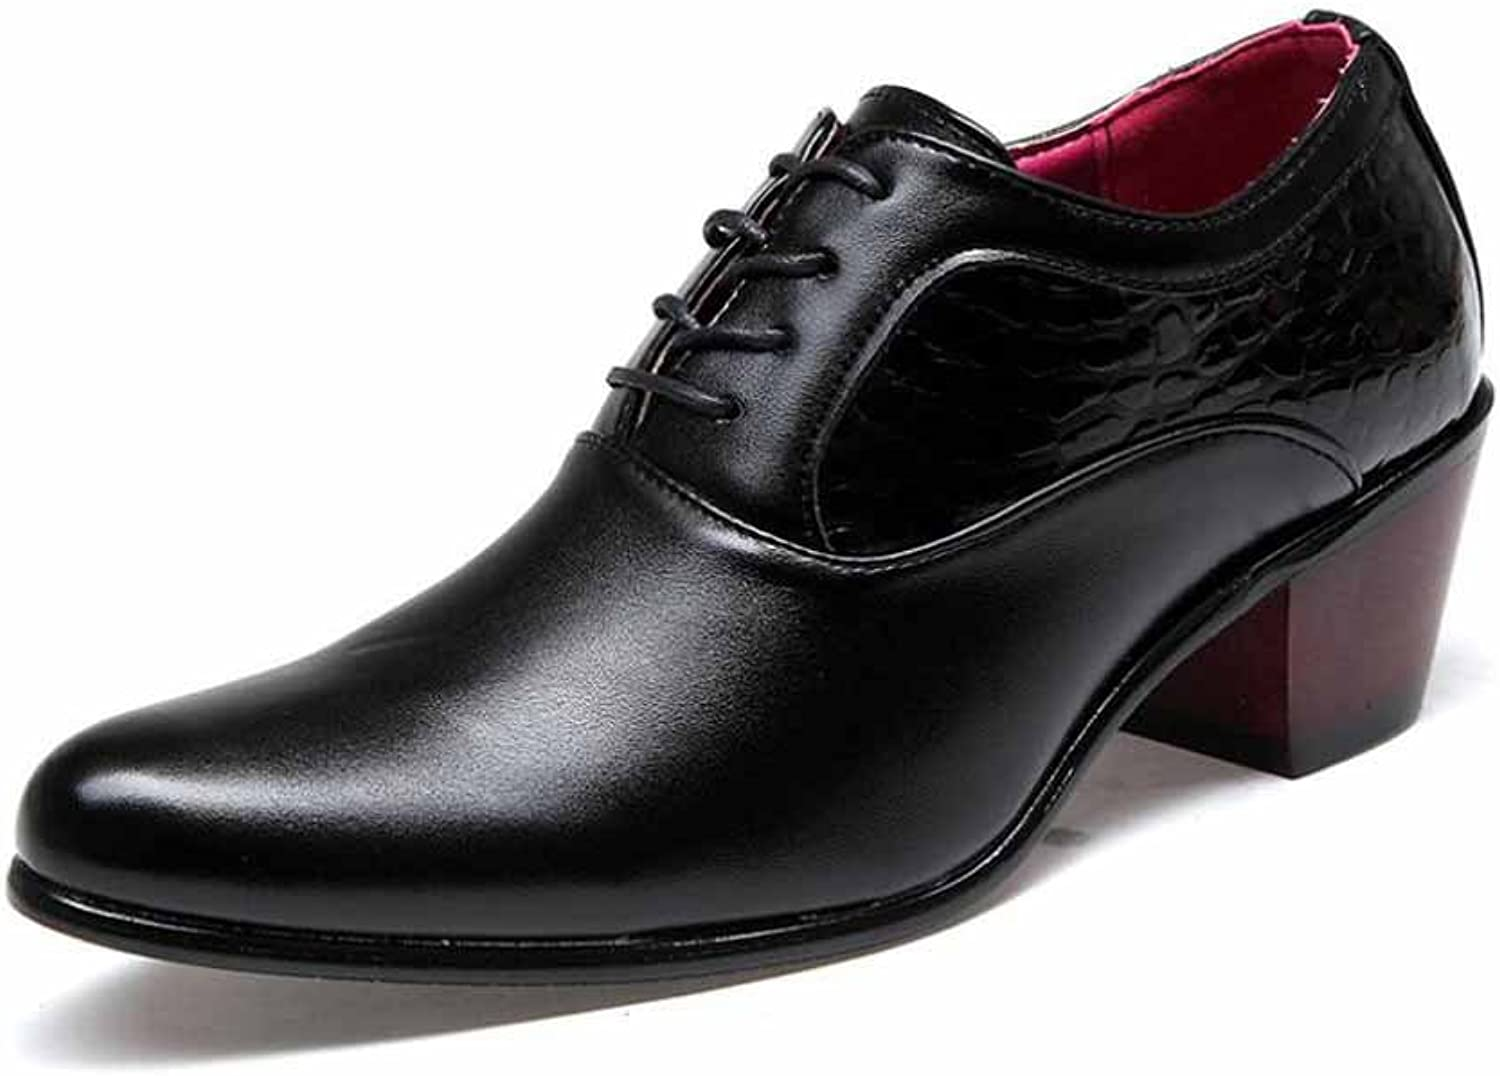 Men Casual Derby shoes New Pointed Business Dress shoes British Wedding shoes